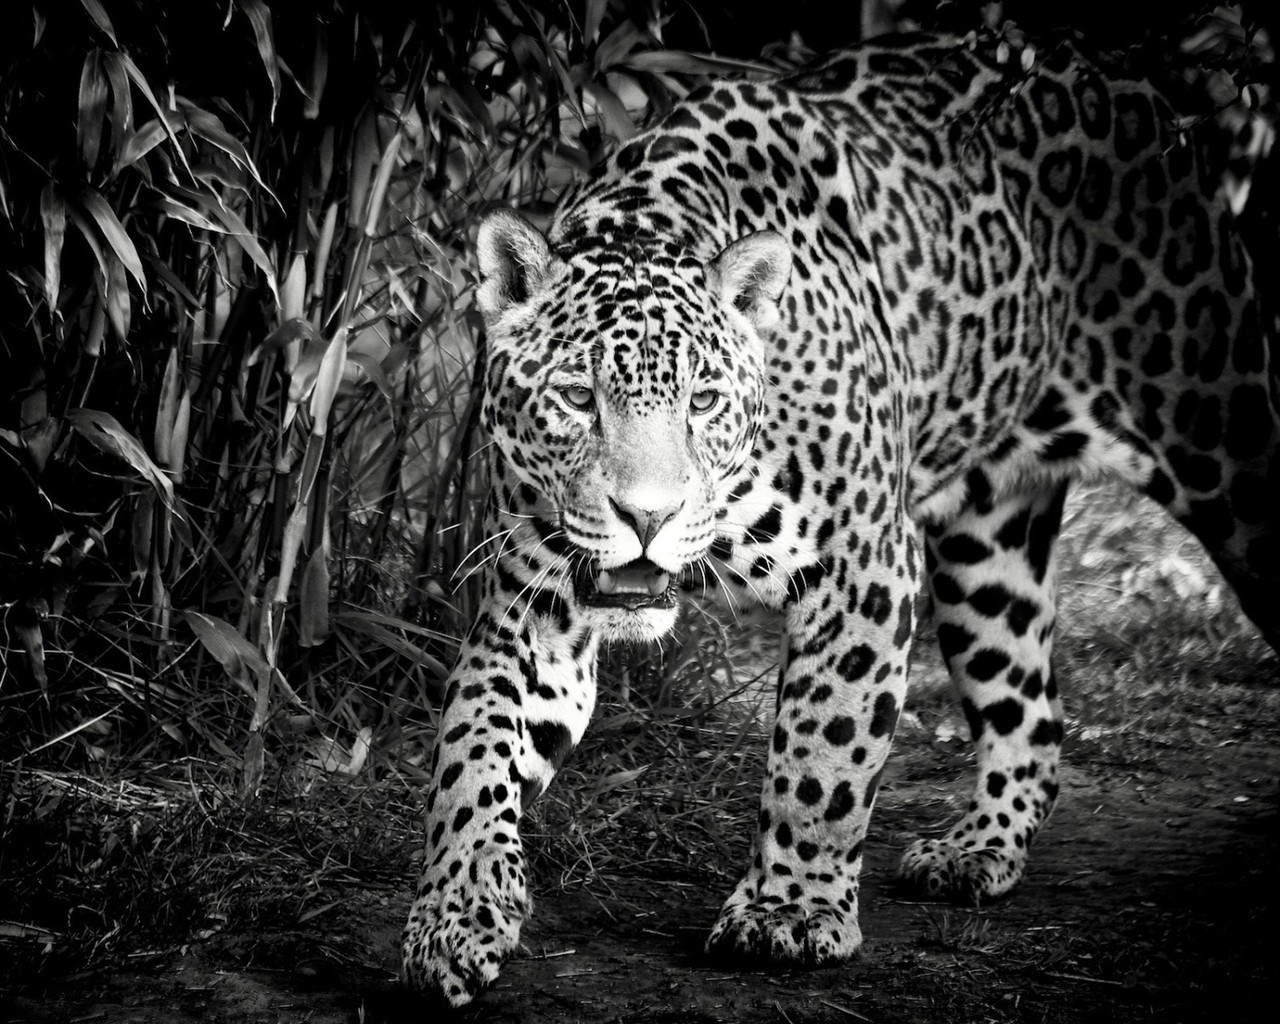 Black and White Jaguar for 1280 x 1024 resolution